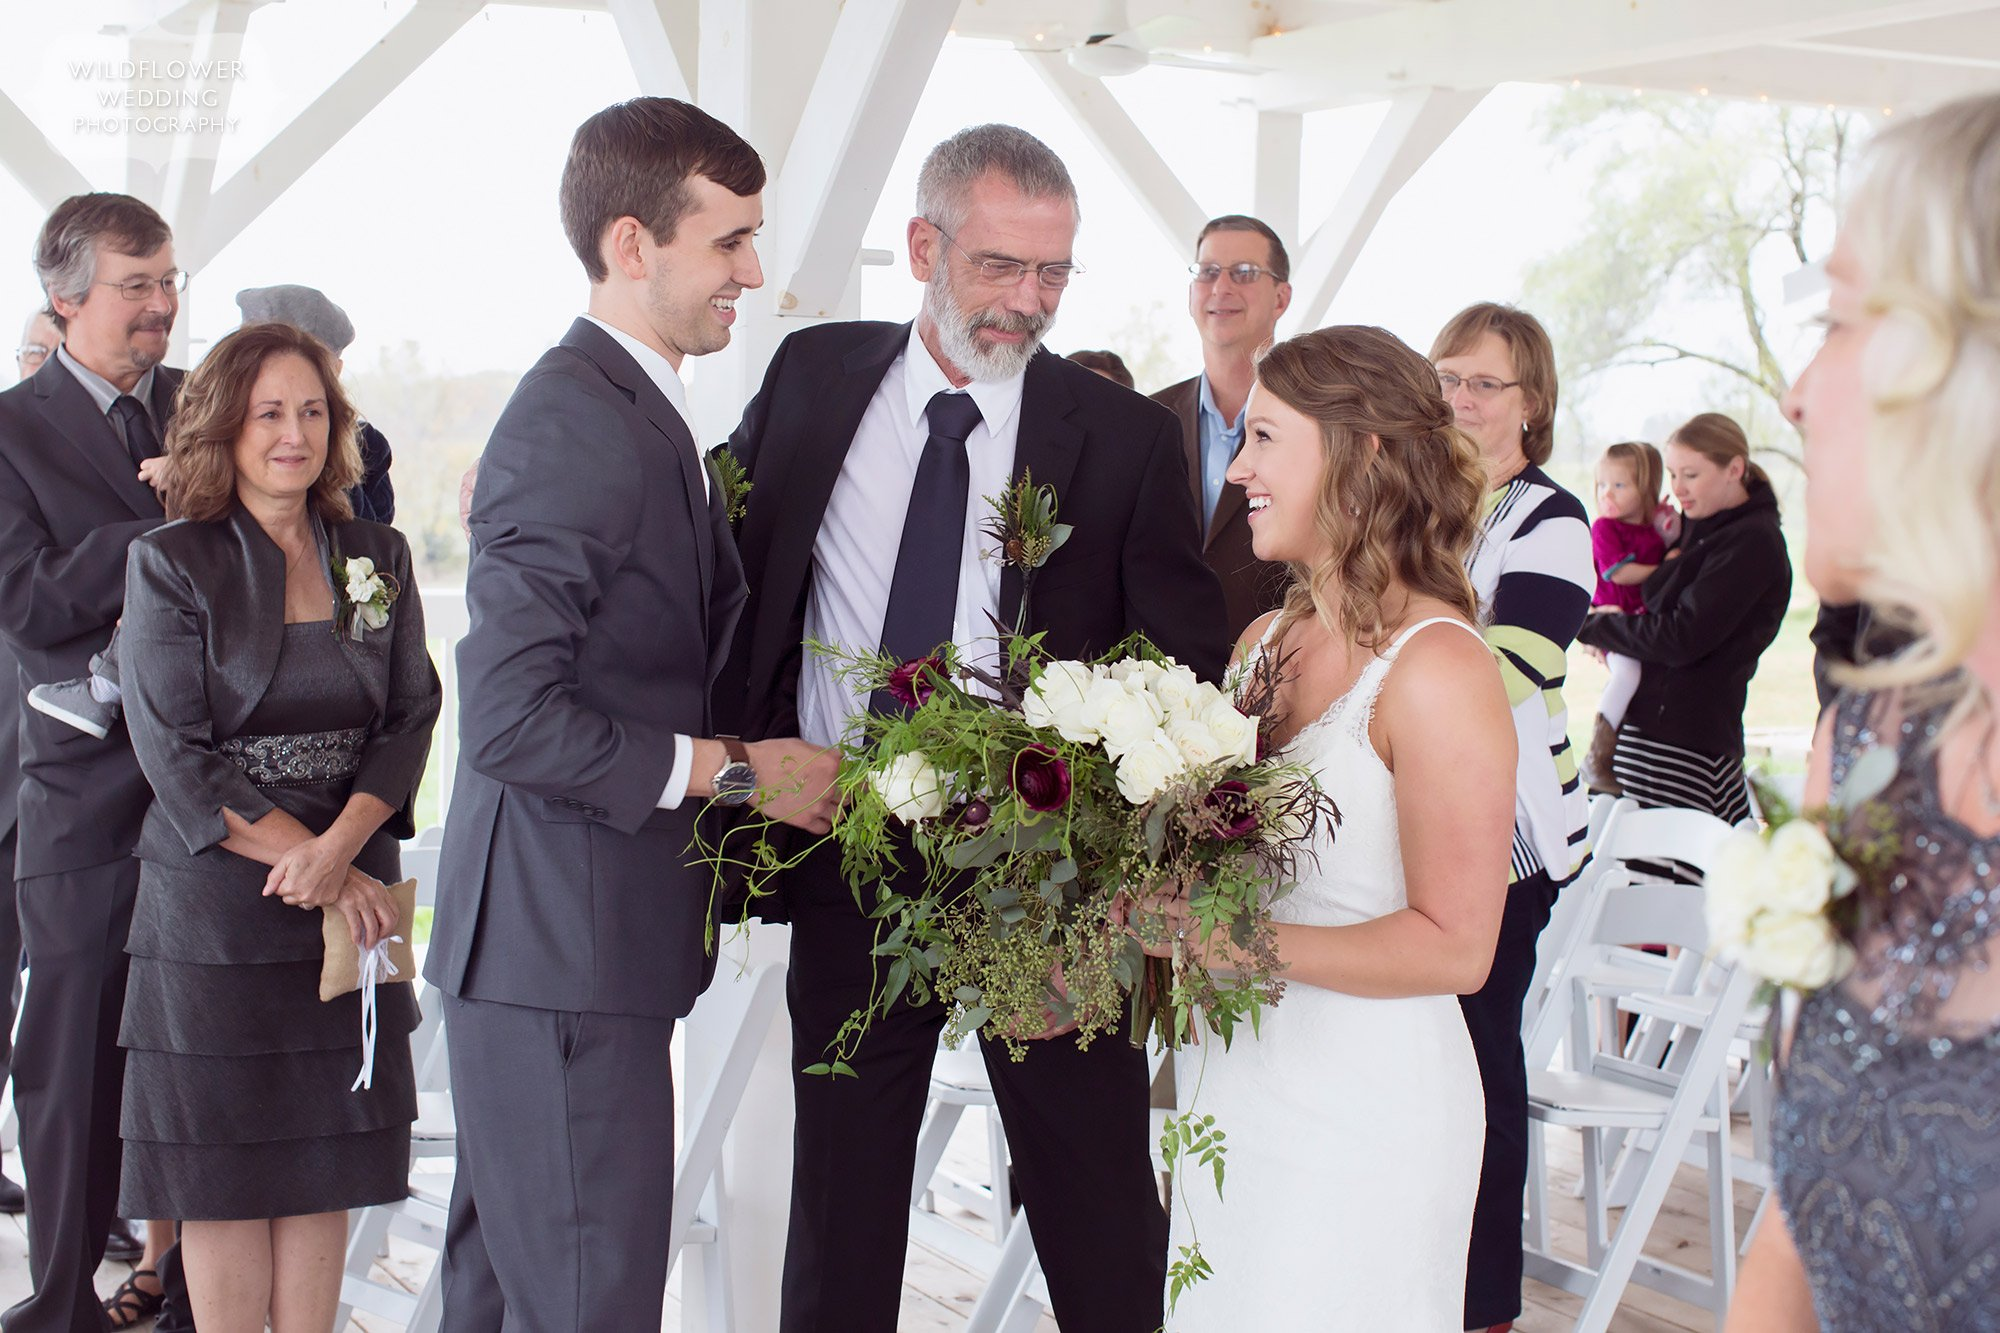 The father gives bride away at outdoor ceremony on deck at Blue Bell Farm.